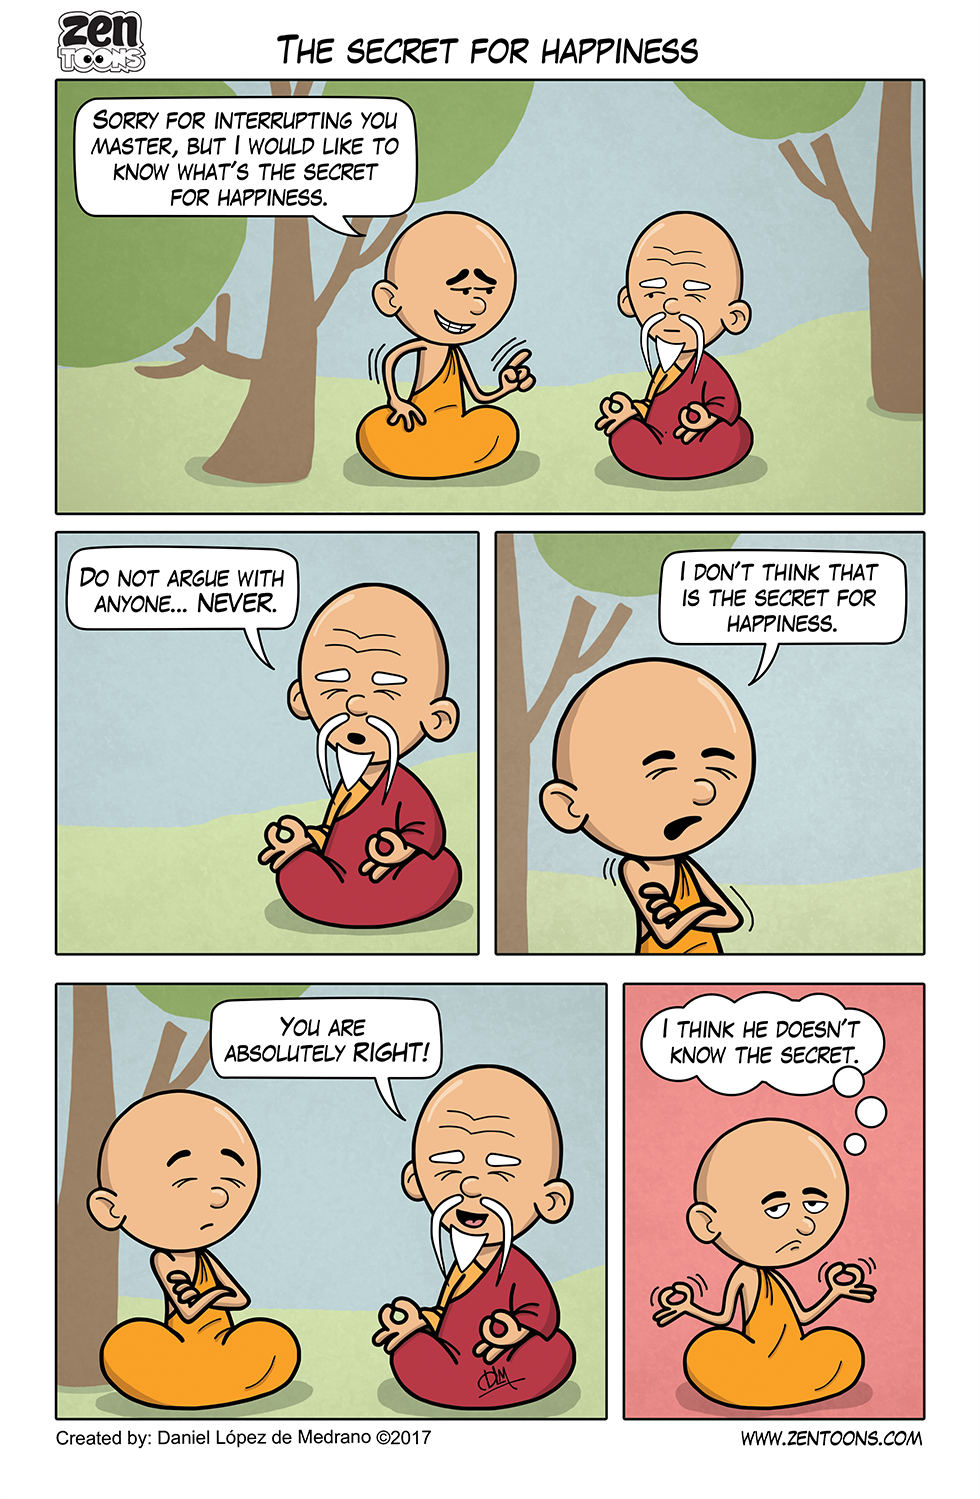 008. ZEN TOONS: The Secret for Happiness